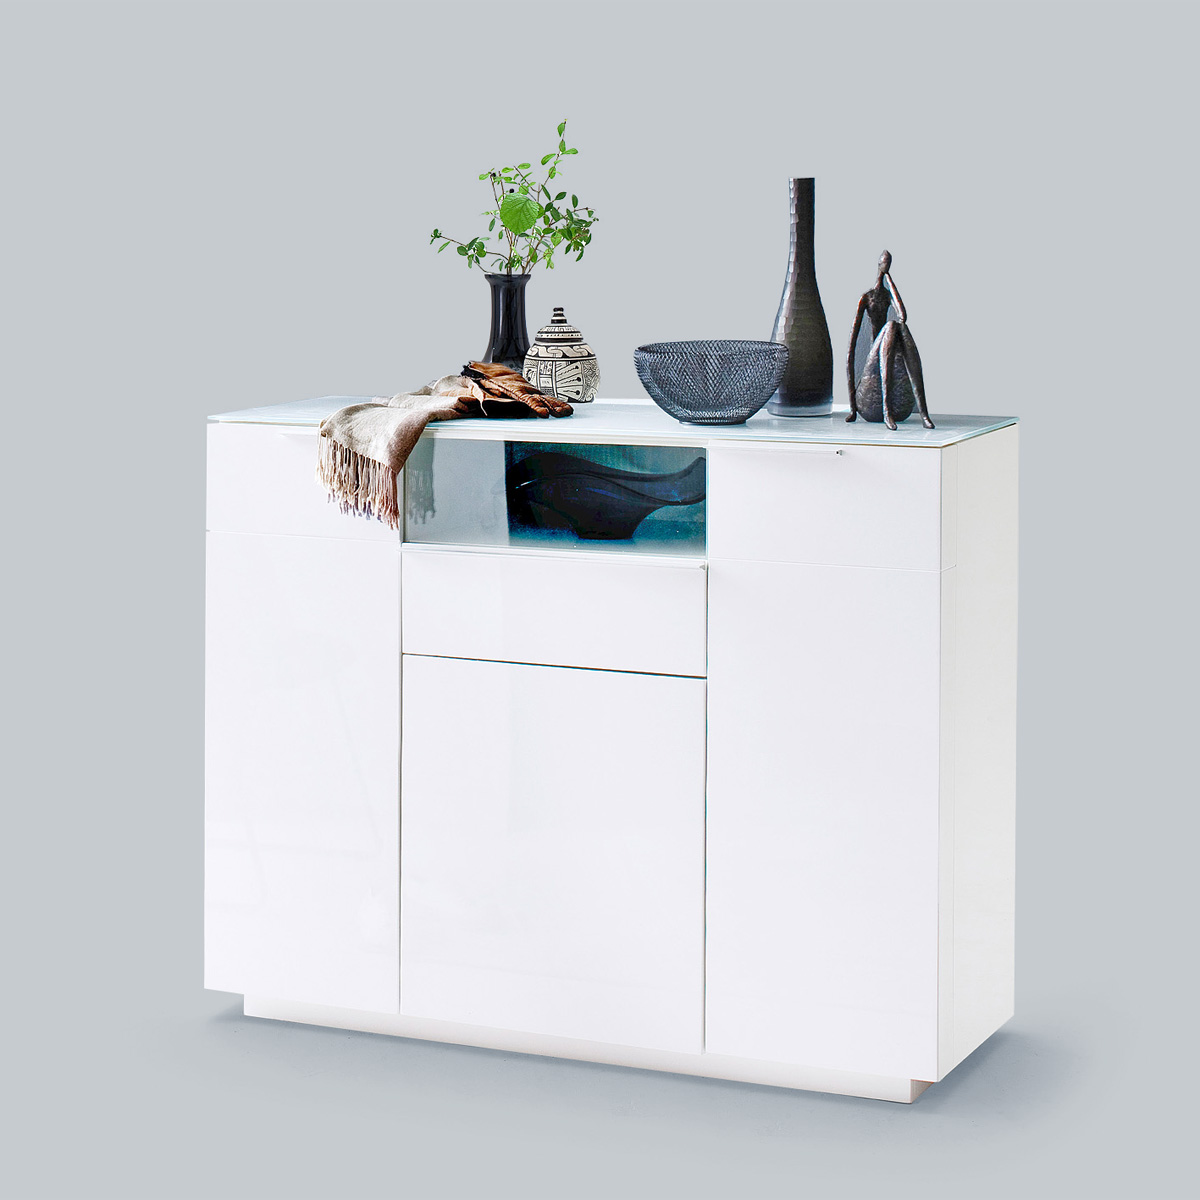 kommode canberra garderobe schuhschrank in wei hochglanz lack mit glas ebay. Black Bedroom Furniture Sets. Home Design Ideas